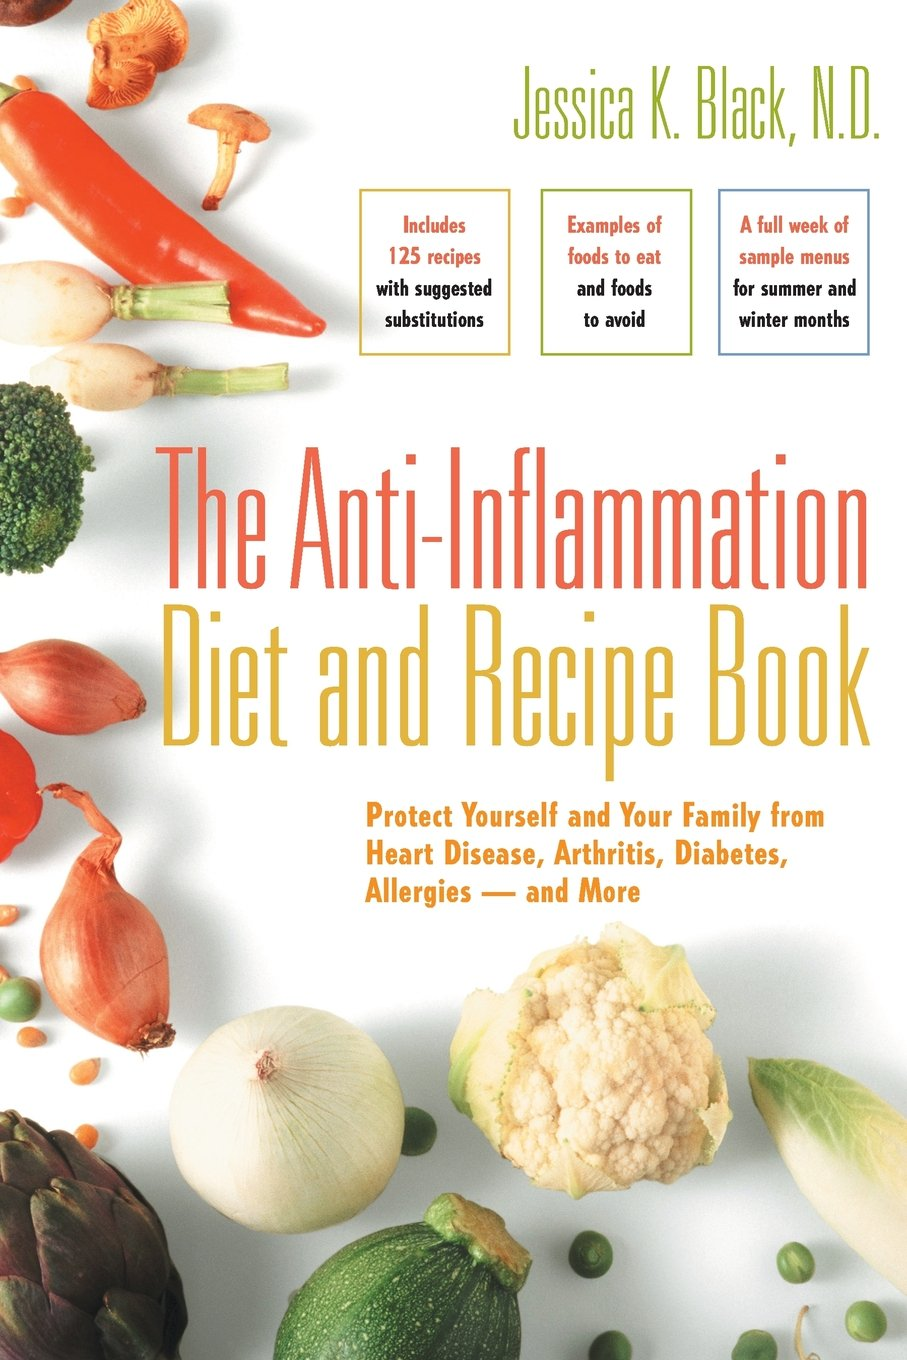 Anti inflammation diet and recipe book protect yourself and your family from heart disease arthritis diabetes allergies and more anti inflammation diet and recipe book protect yourself and your family from heart disease arthritis diabetes allergies and mo Image collections